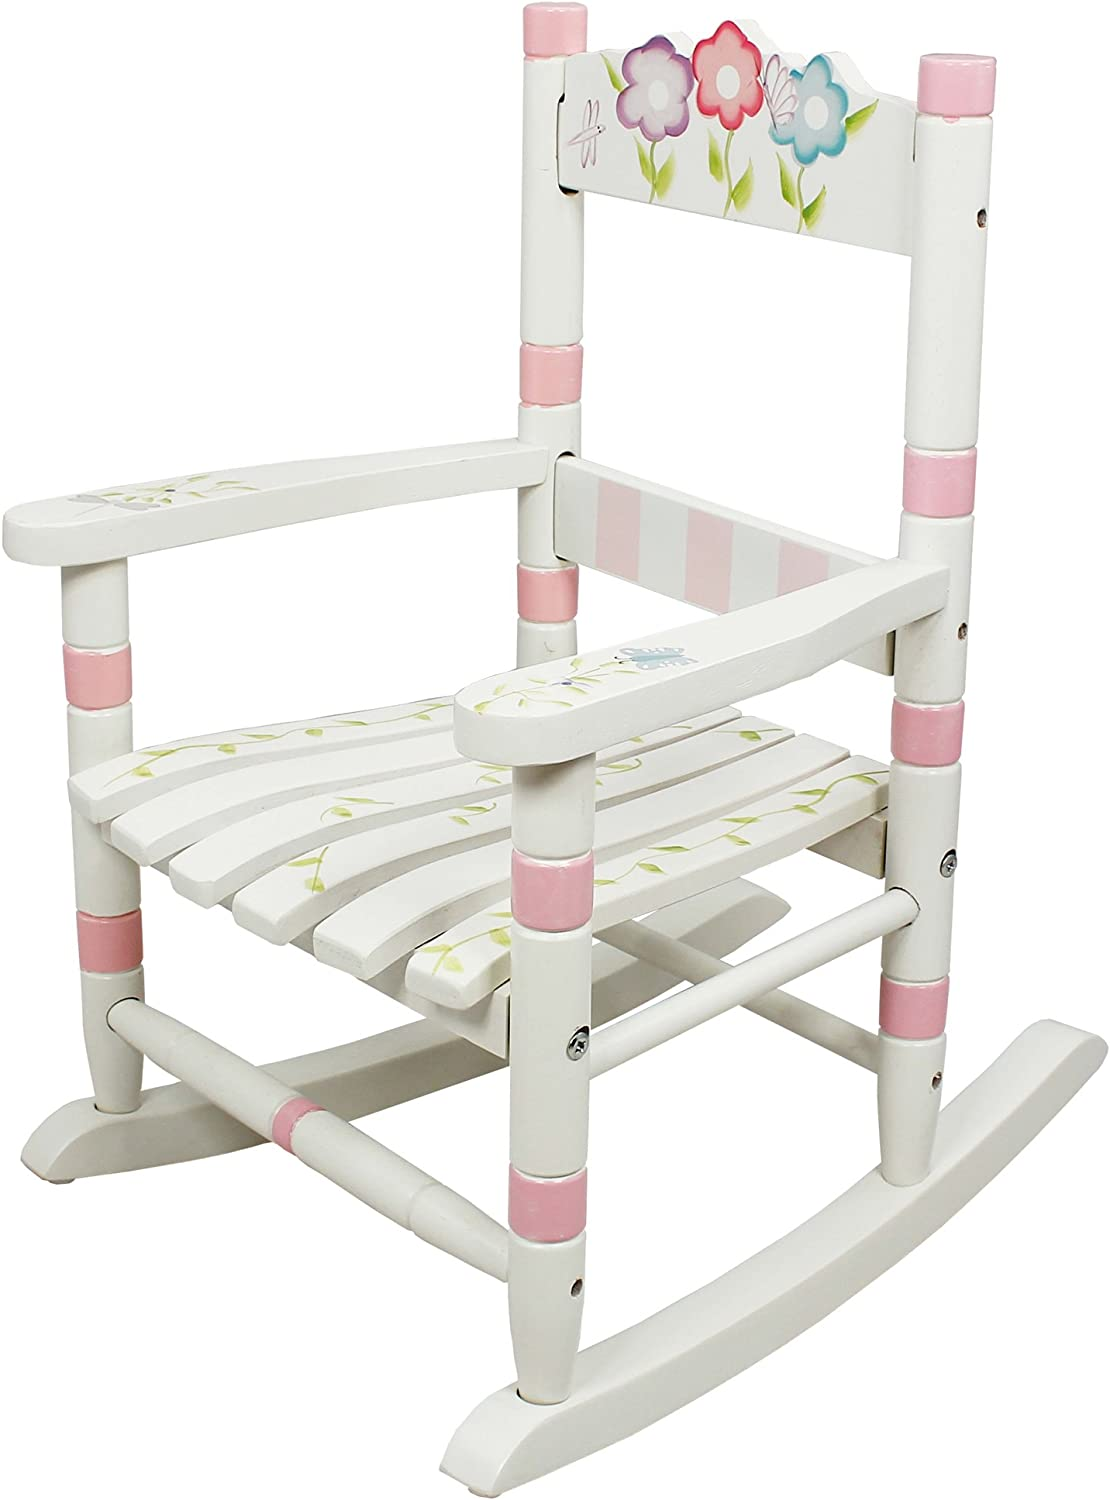 Teamson Design Corp Fantasy Fields - Bouquet Thematic Child Wooden Small Rocking Chair, Imagination Inspiring Hand Crafted & Hand Painted Details Non-Toxic, Lead Free Water-Based Paint